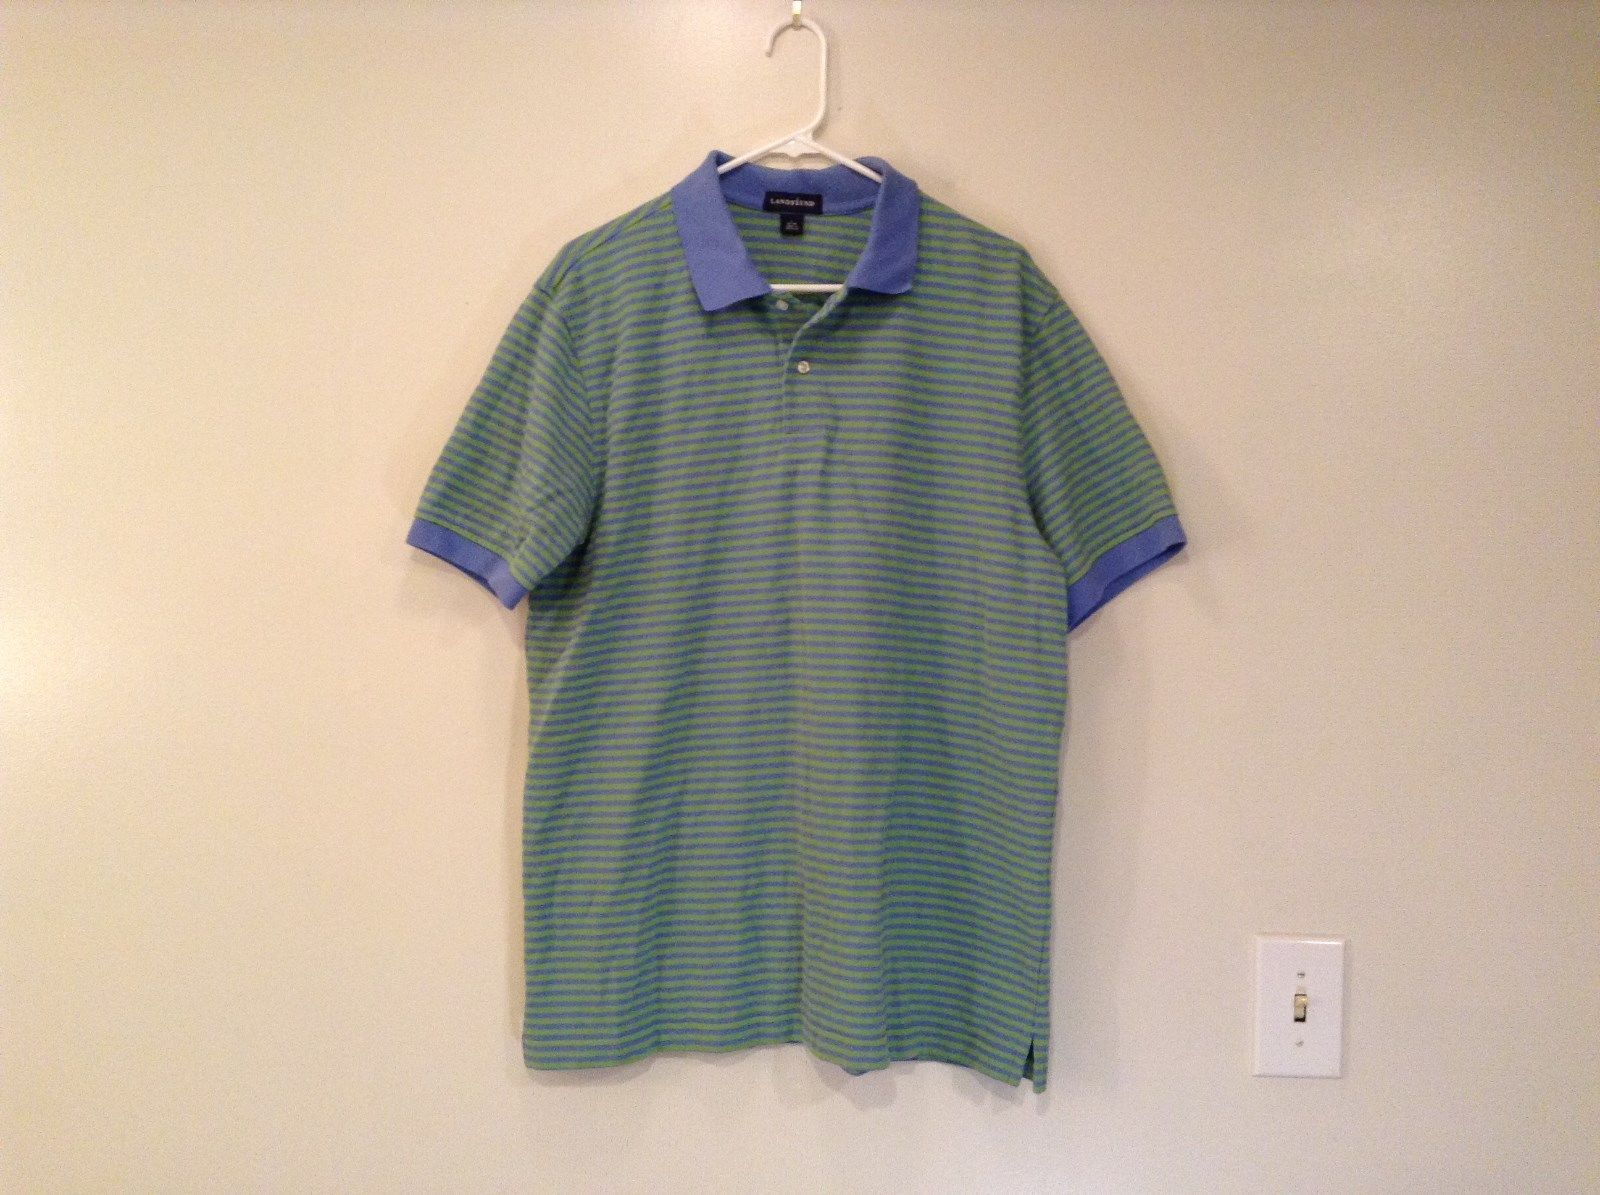 Blue Green Stripes Blue Collar Sleeve Cuffs Cotton Lands End Polo Shirt Size L